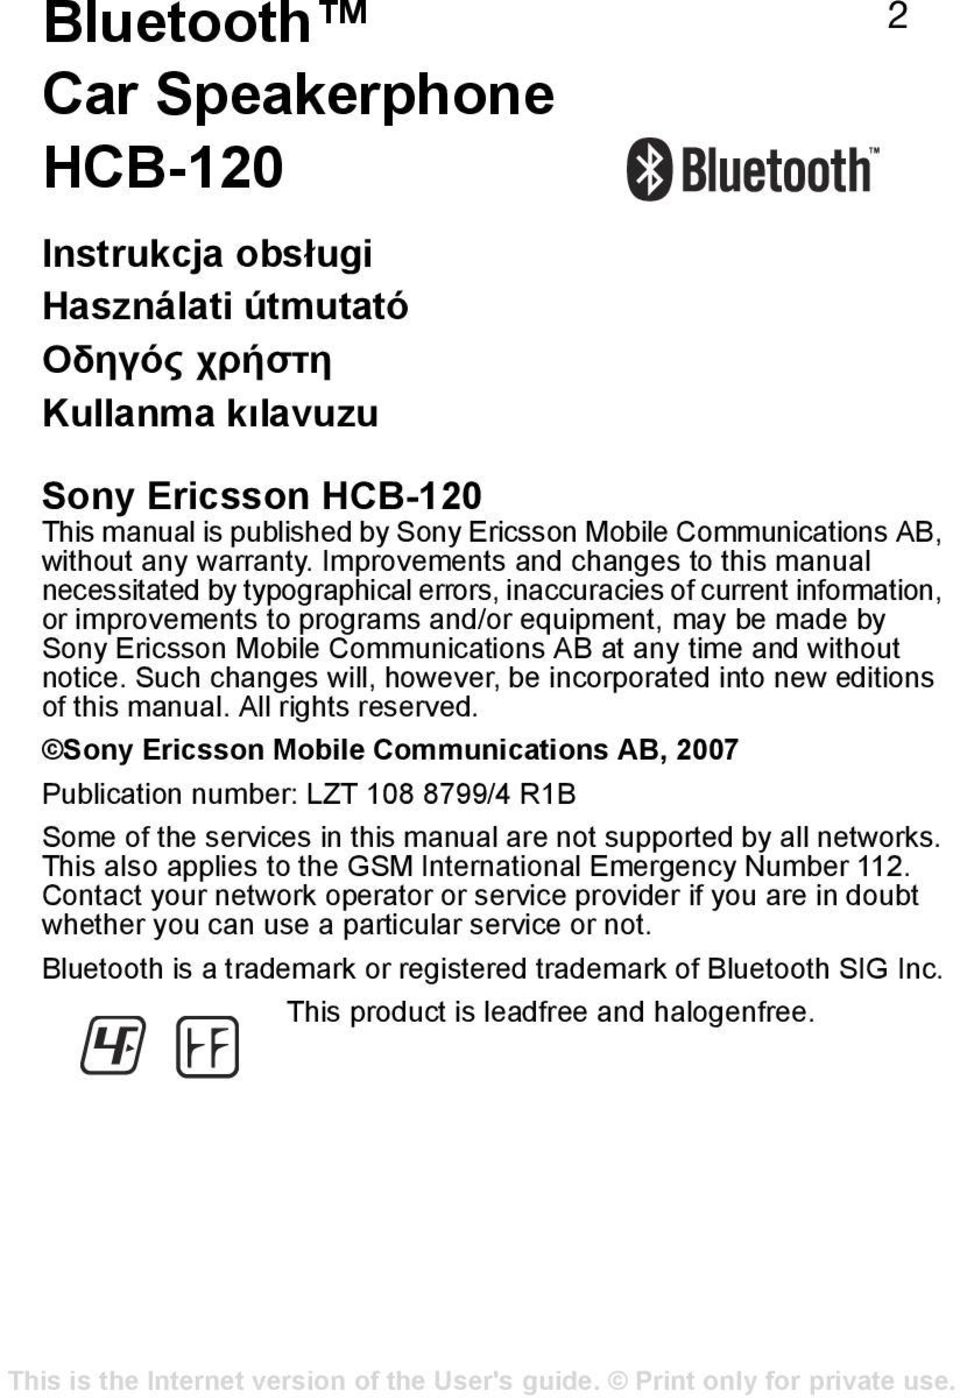 Improvements and changes to this manual necessitated by typographical errors, inaccuracies of current information, or improvements to programs and/or equipment, may be made by Sony Ericsson Mobile